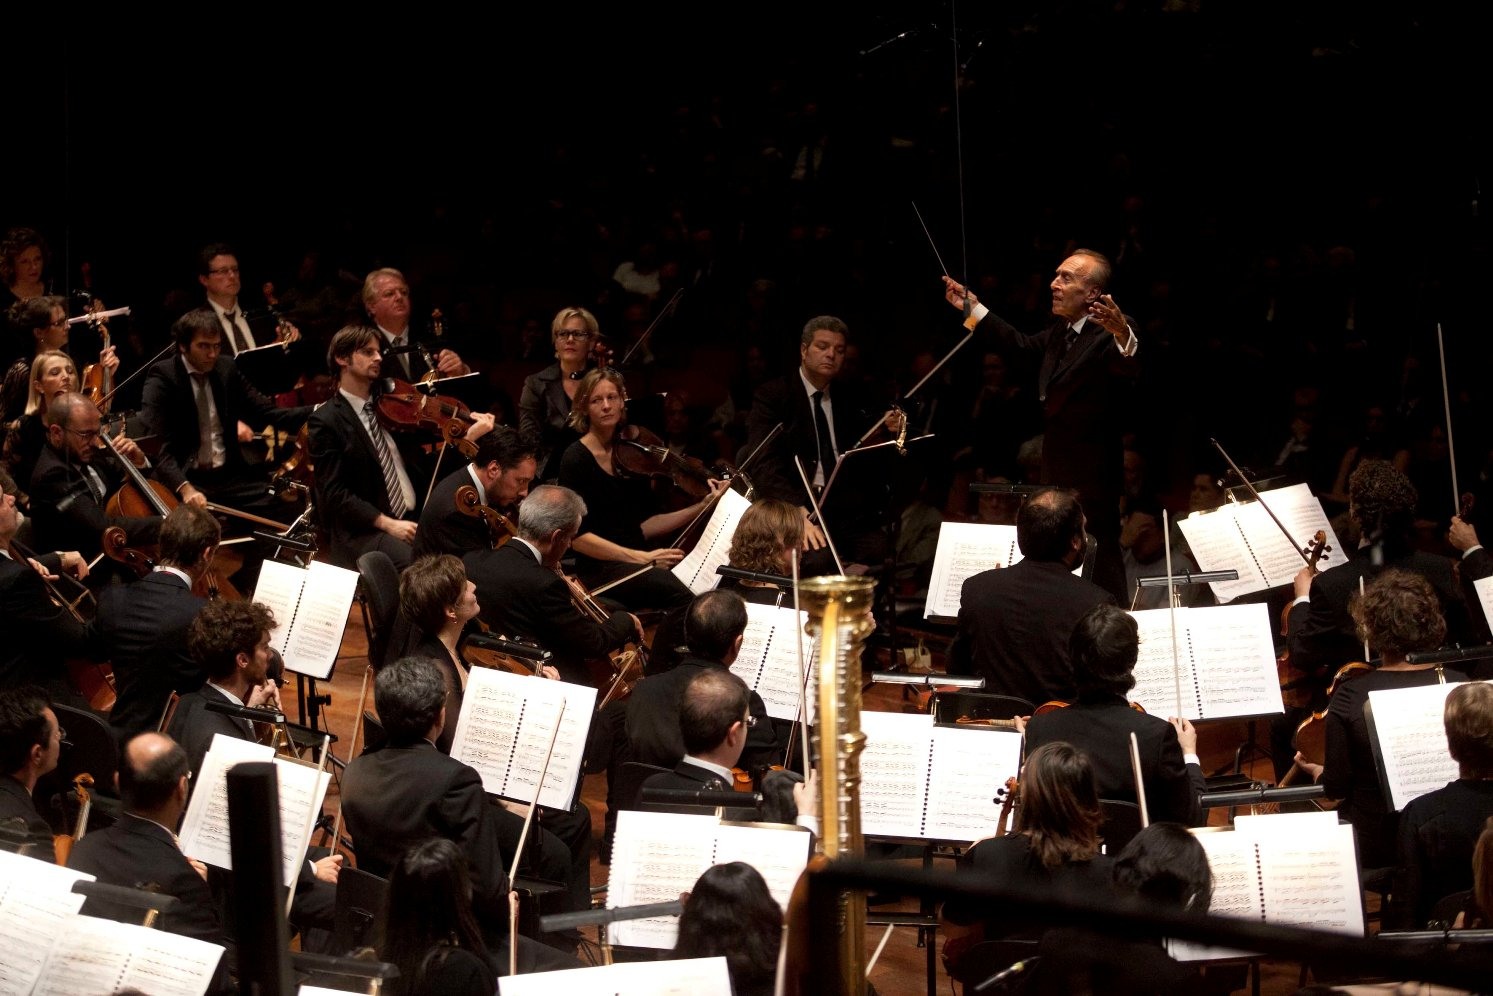 Abbado conducting the Accademia di Santa Cecilia and Orchestra Mozart in Rome